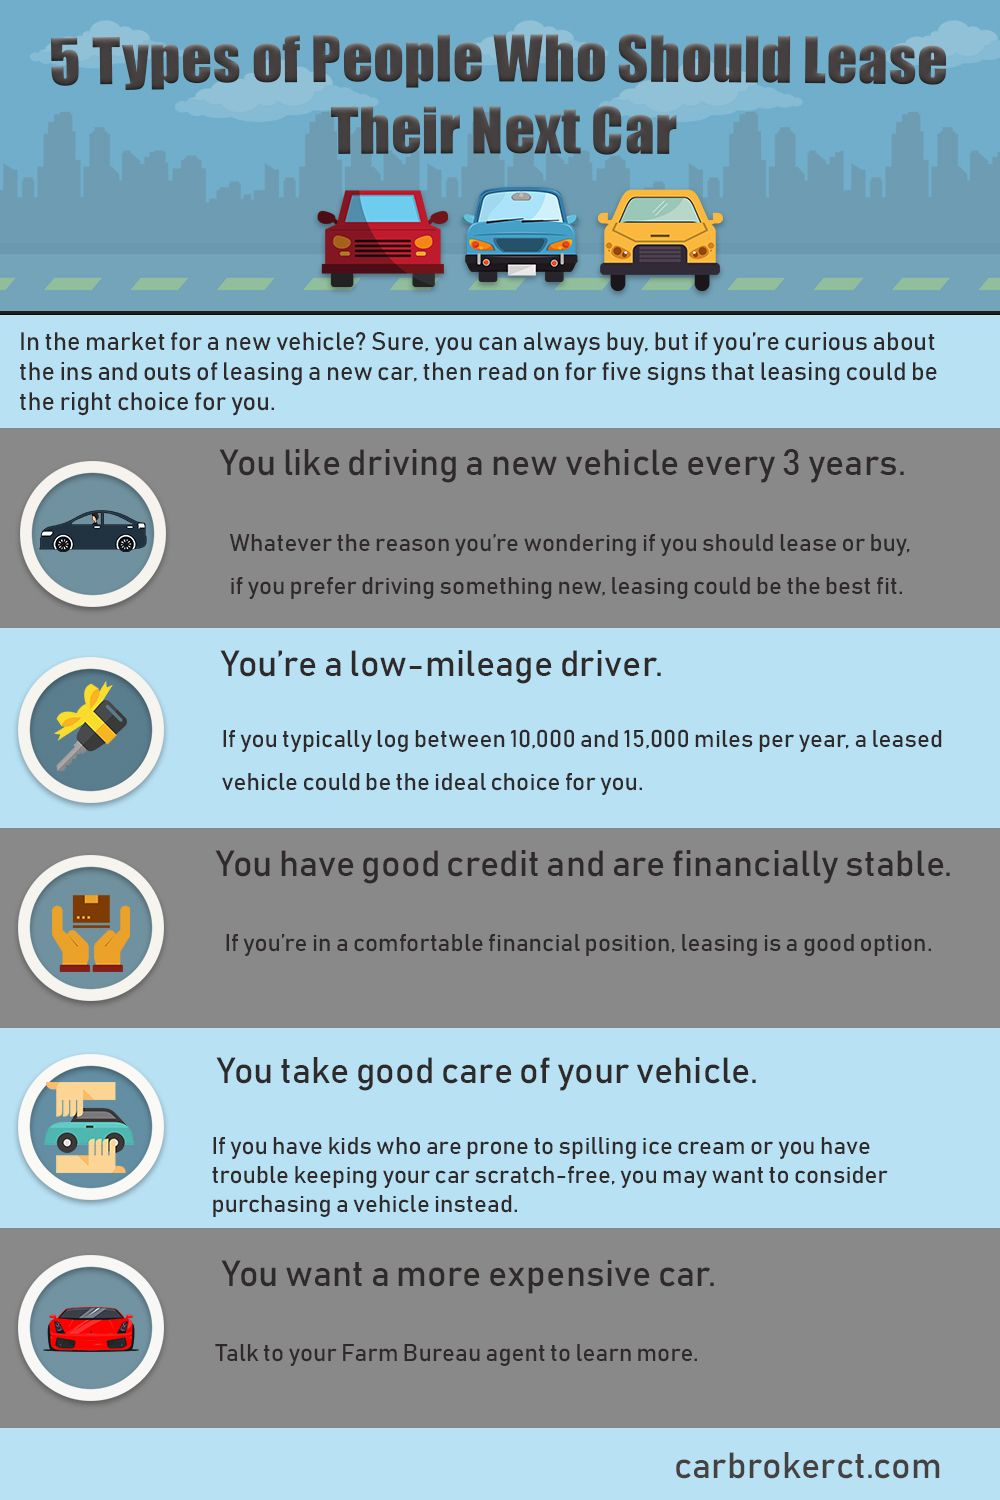 5 Types Of People Who Should Lease Their Next Car Car Lease Car Broker Online Cars